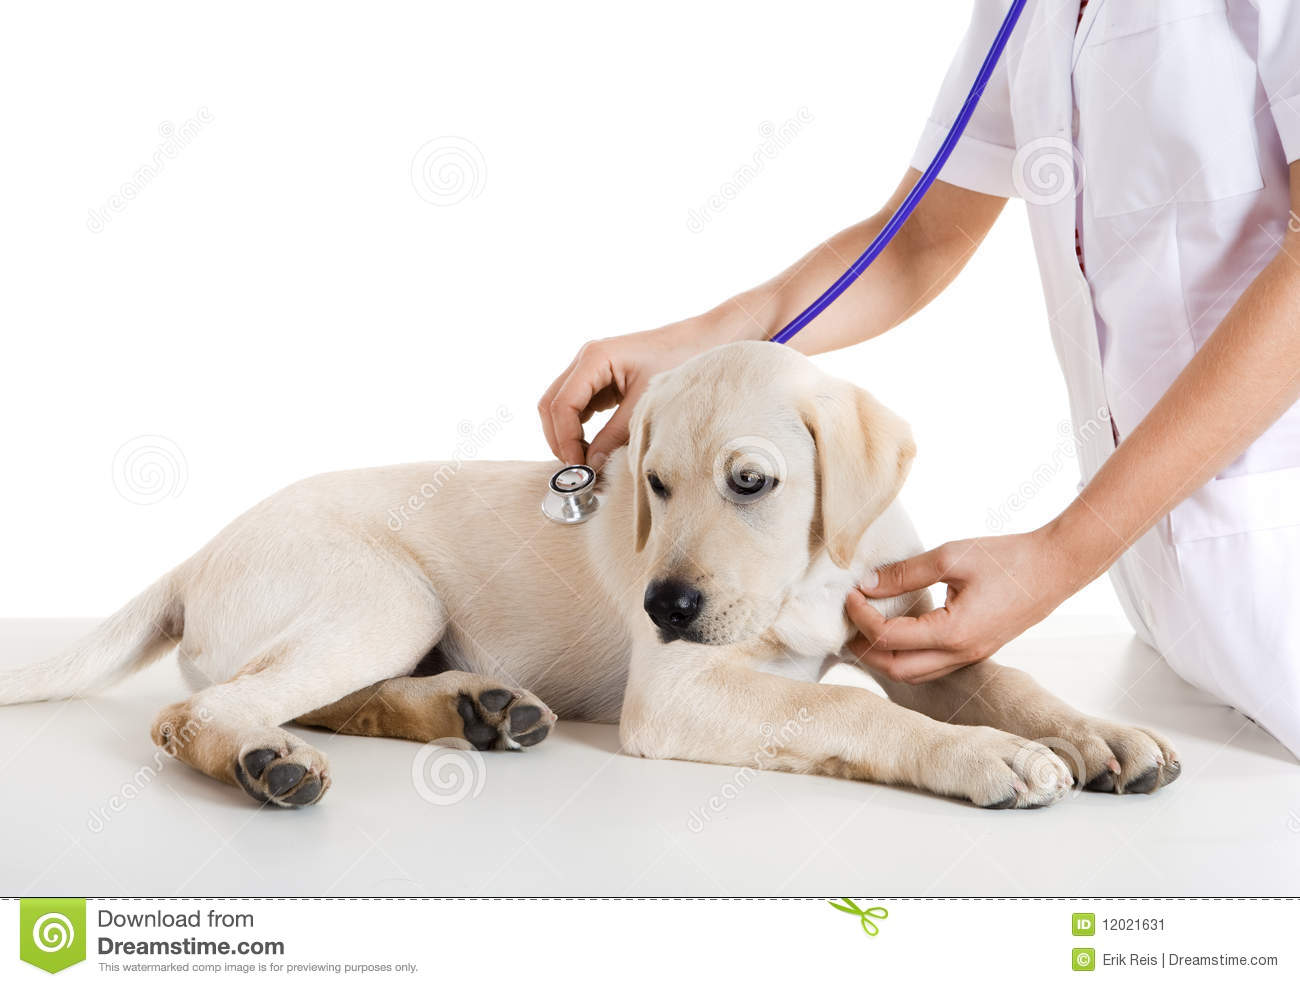 taking care of a puppy How to take care of puppies learn all about puppy basic care, its vaccinations and veterinary care, feeding and potty training puppies, obedience and socialization and more useful tips.